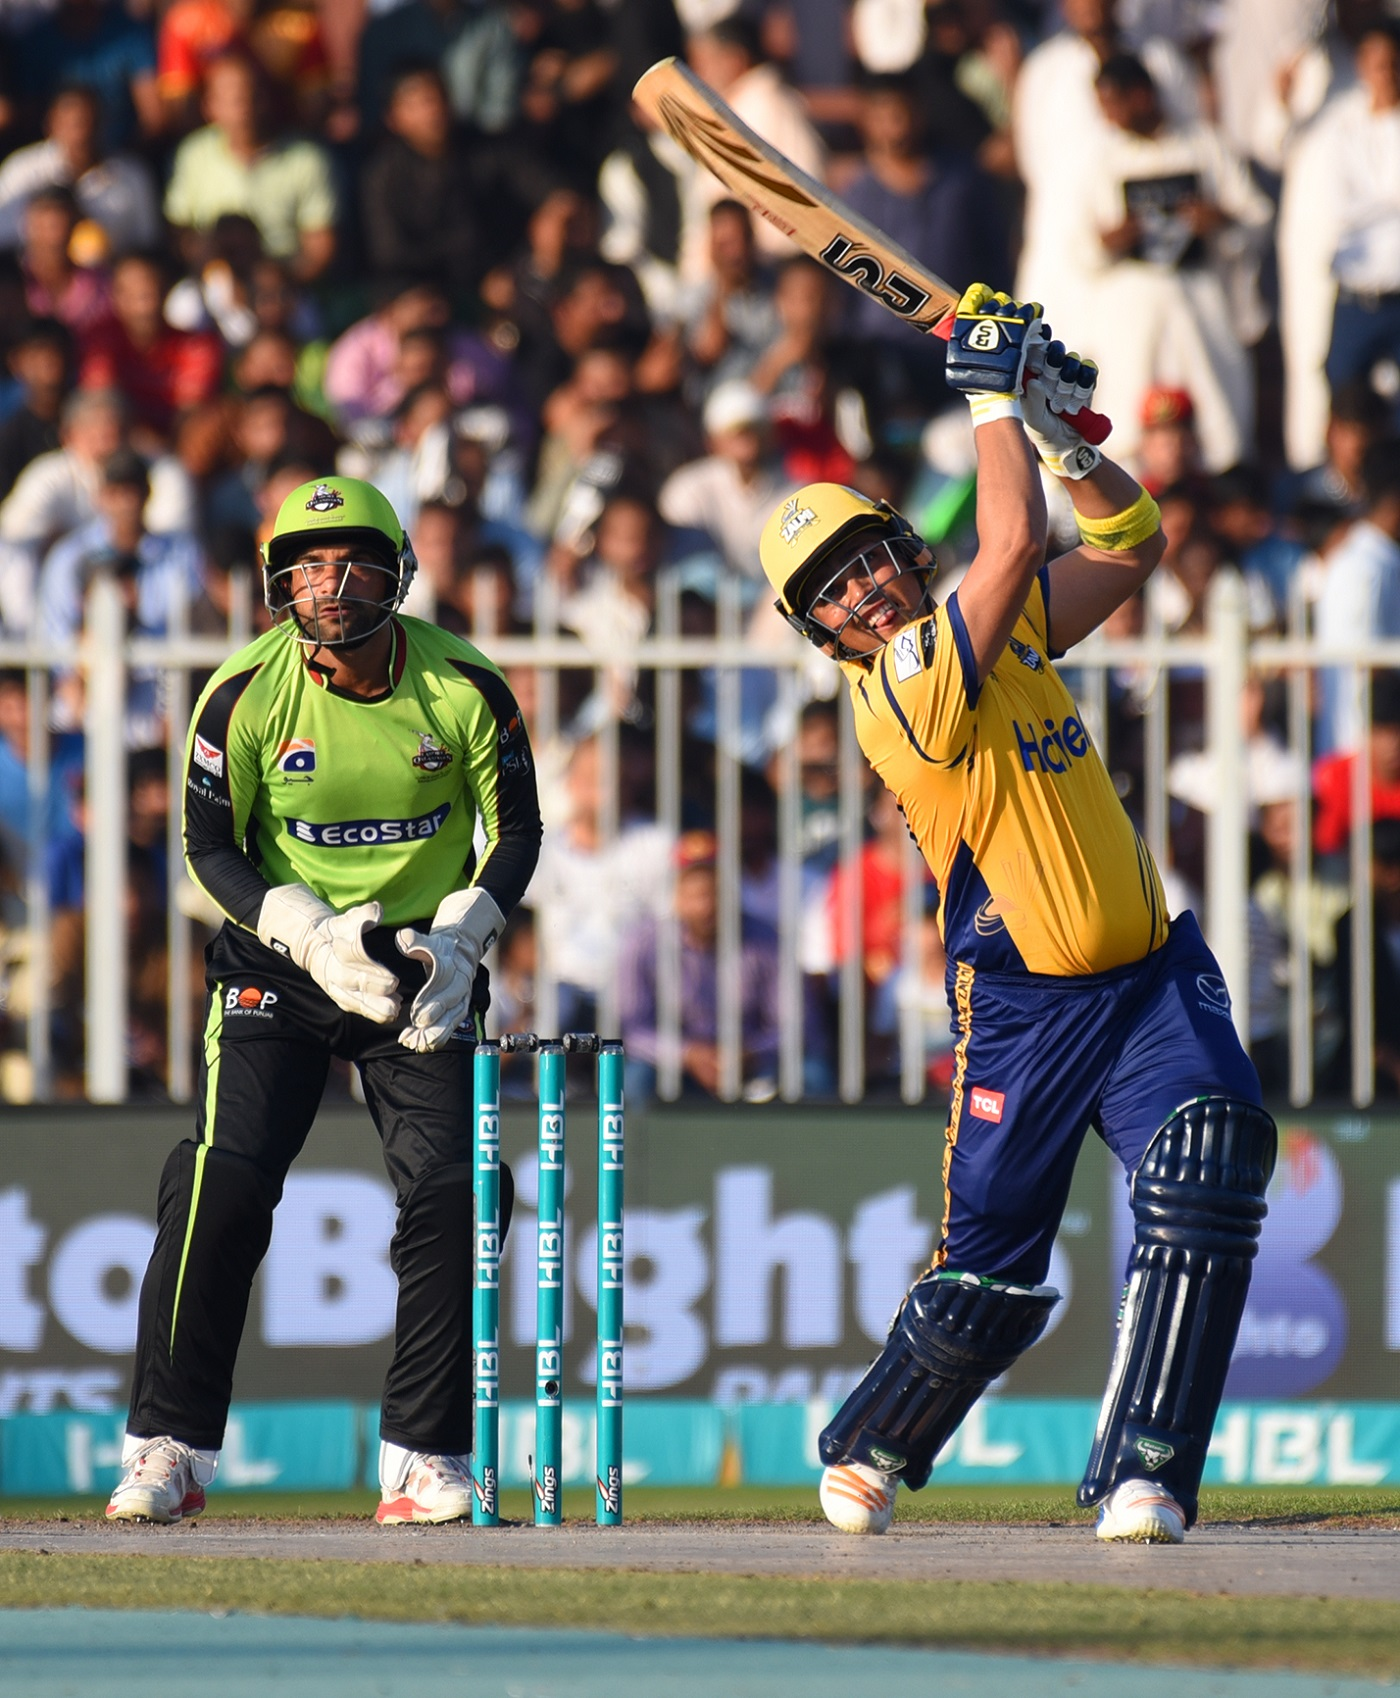 29th Match (D/N), Pakistan Super League At Sharjah, Mar 16